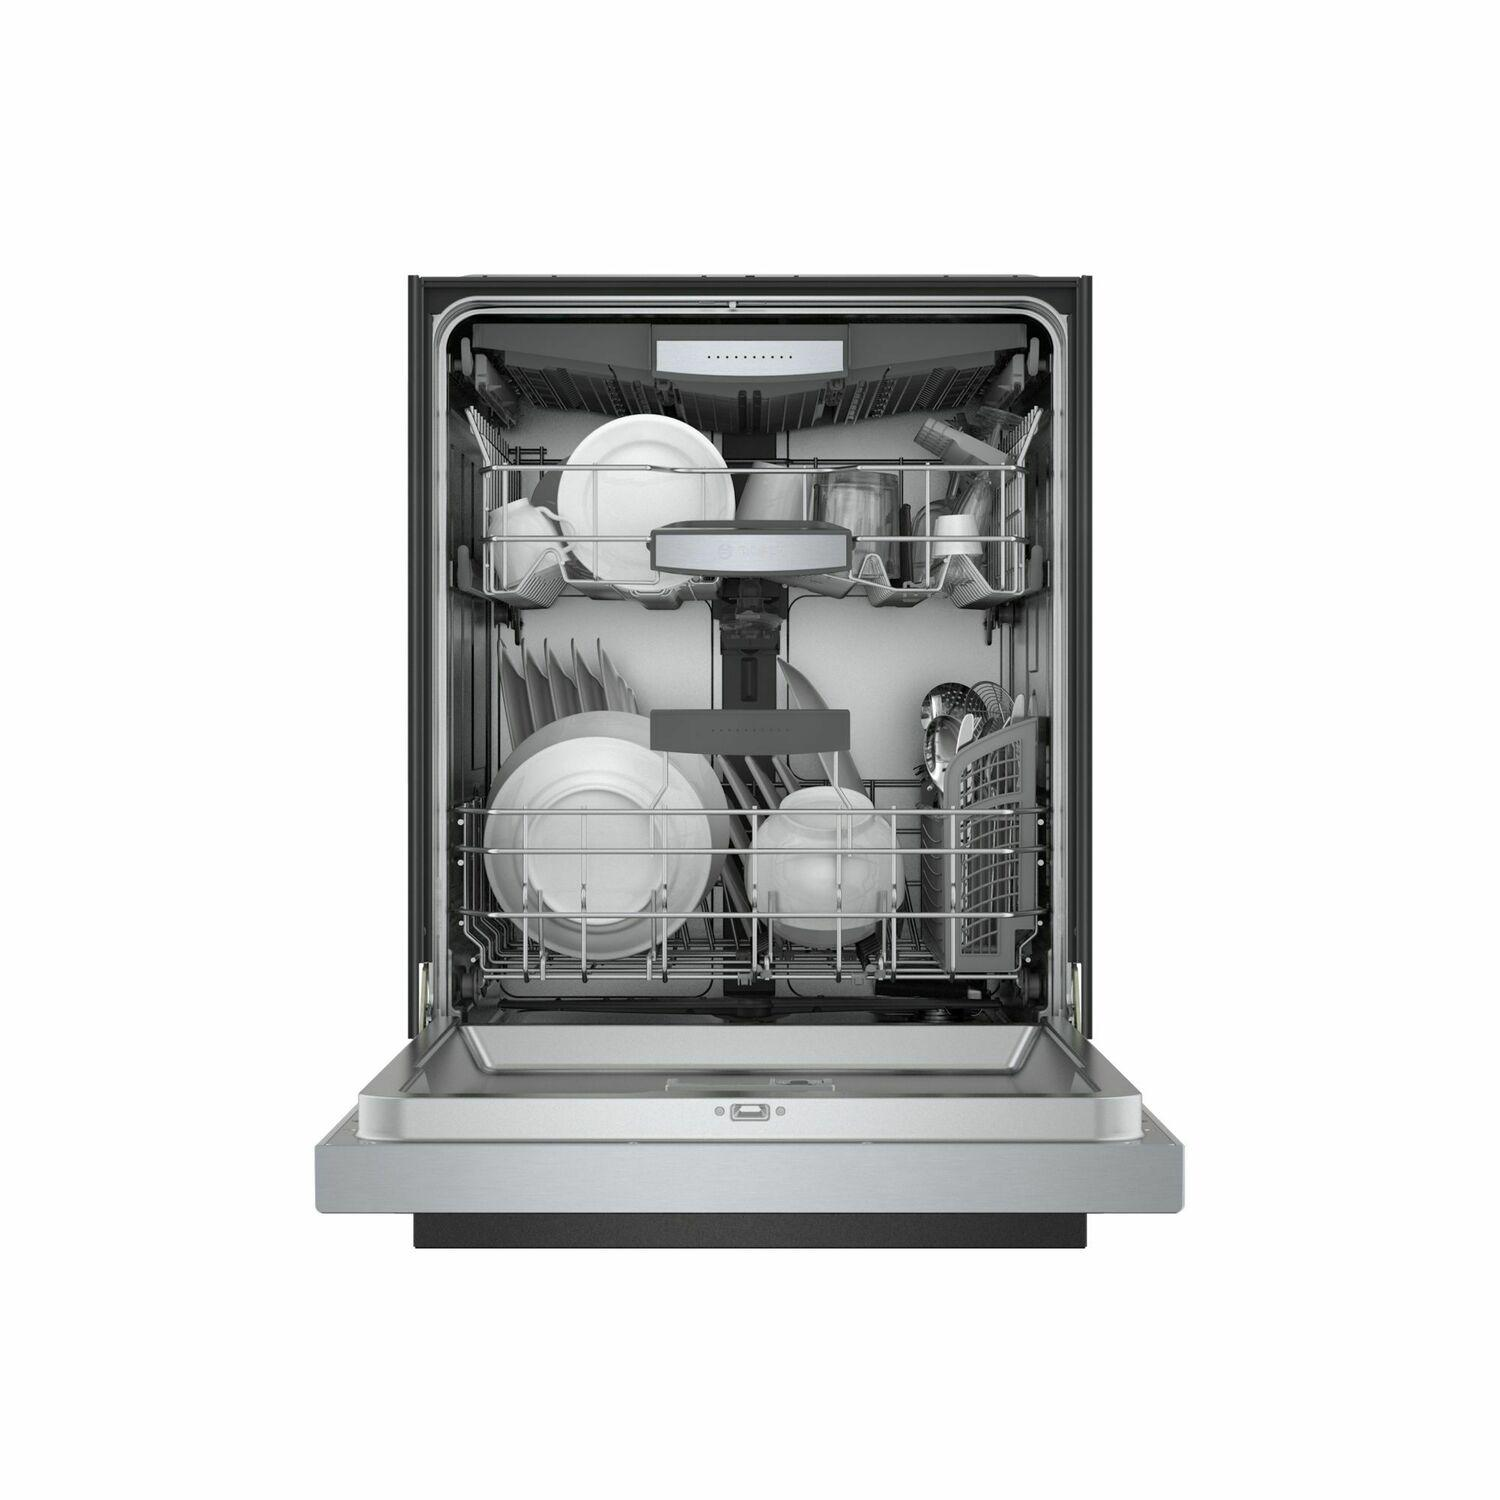 Shem78z55n Bosch 800 Series Dishwasher 24 Stainless Steel Shem78z55n Stainless Steel Manuel Joseph Appliance Center